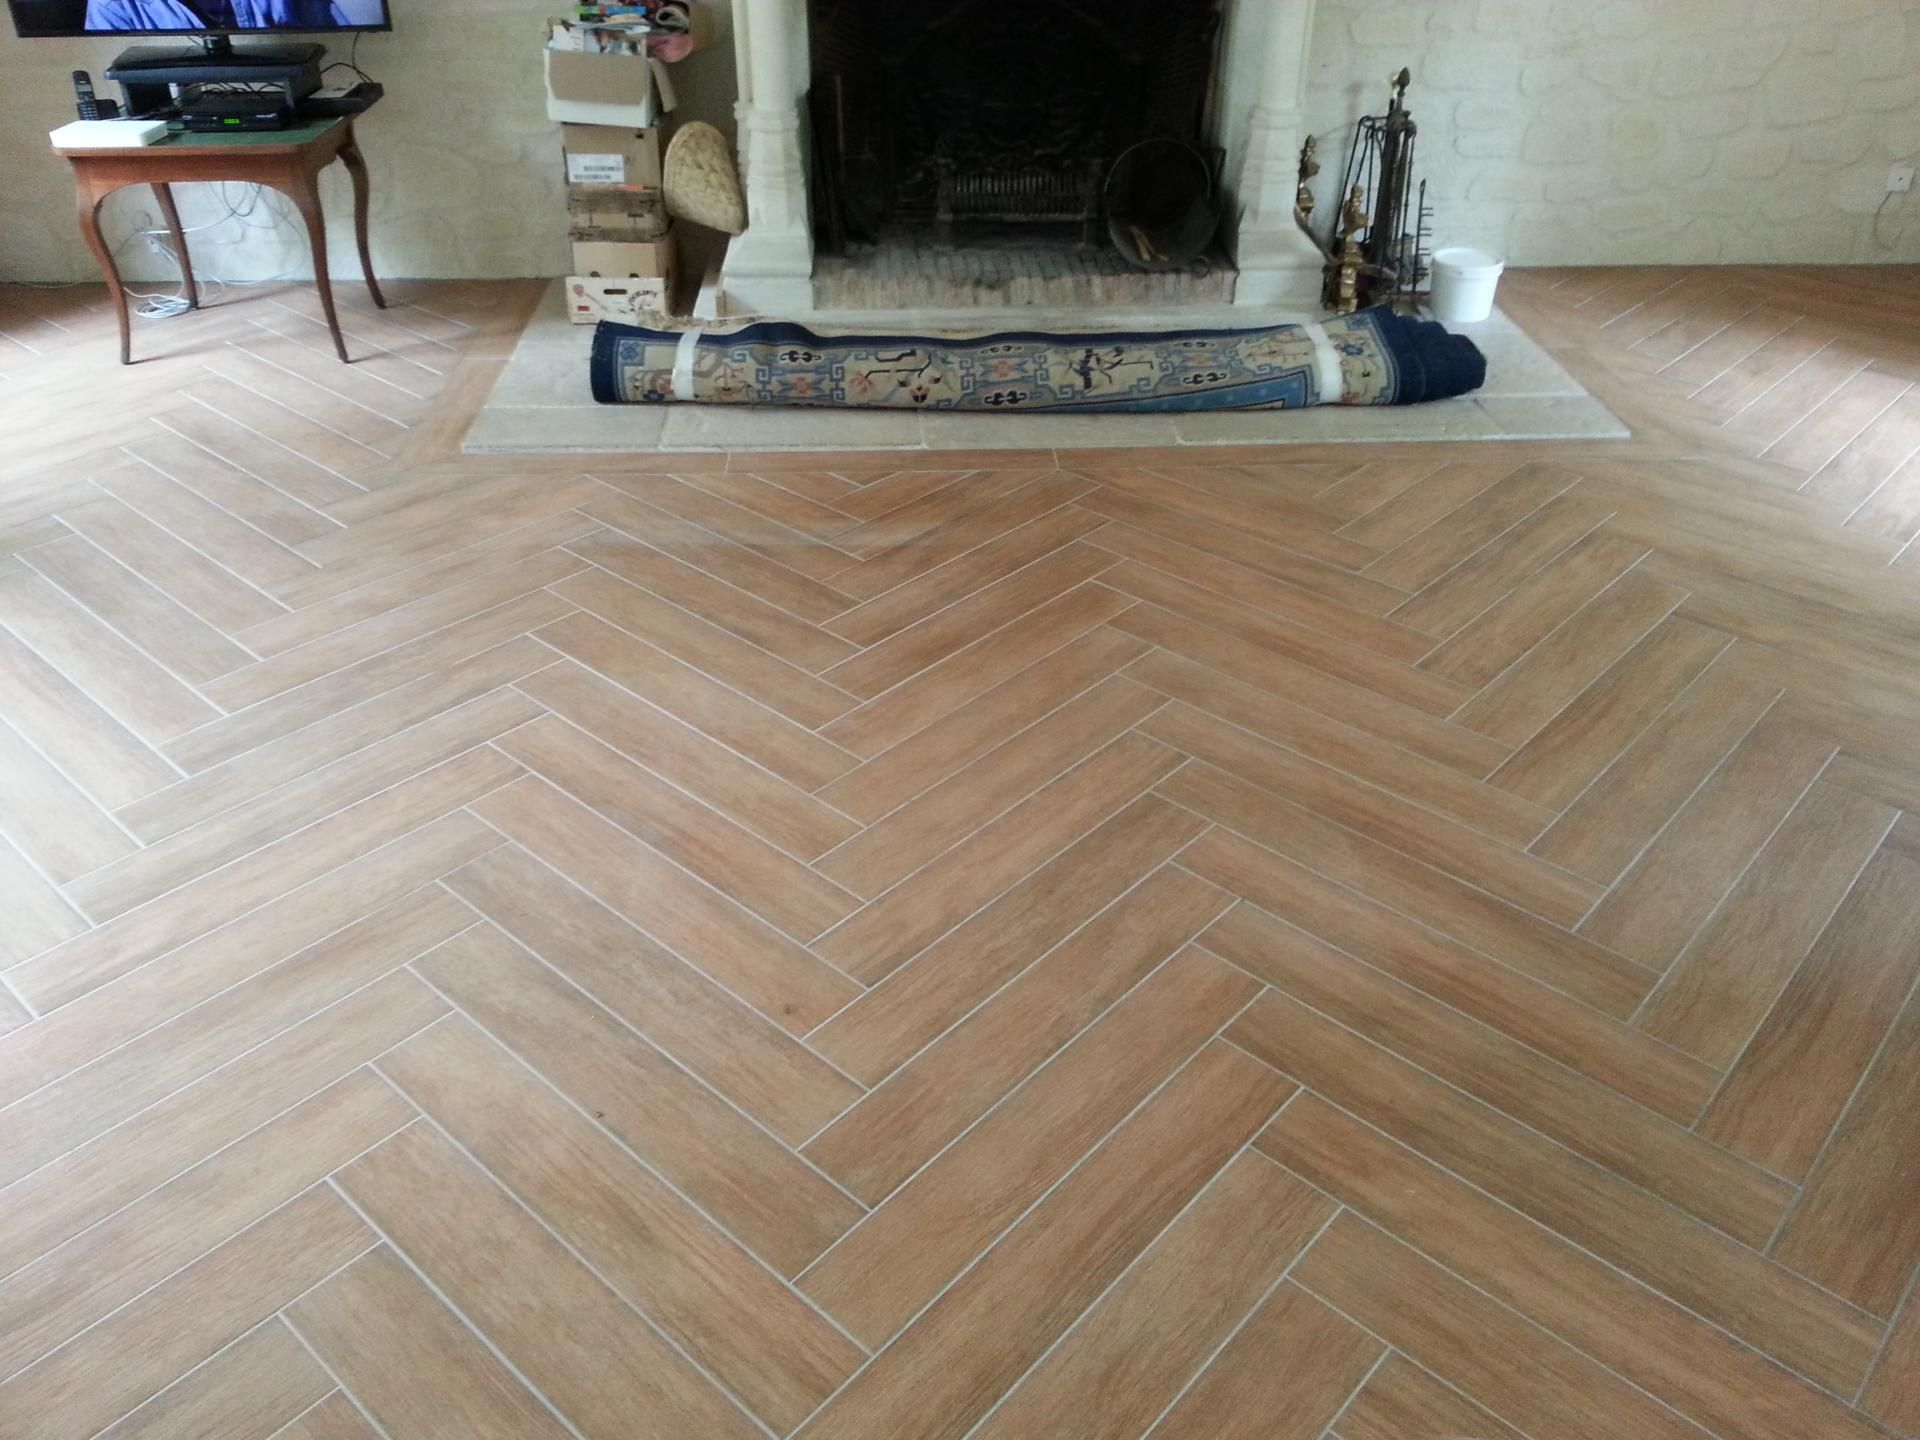 Parquet Sur Carrelage Carrelage Chevron Floors In 2019 Parquetry Flooring Wooden